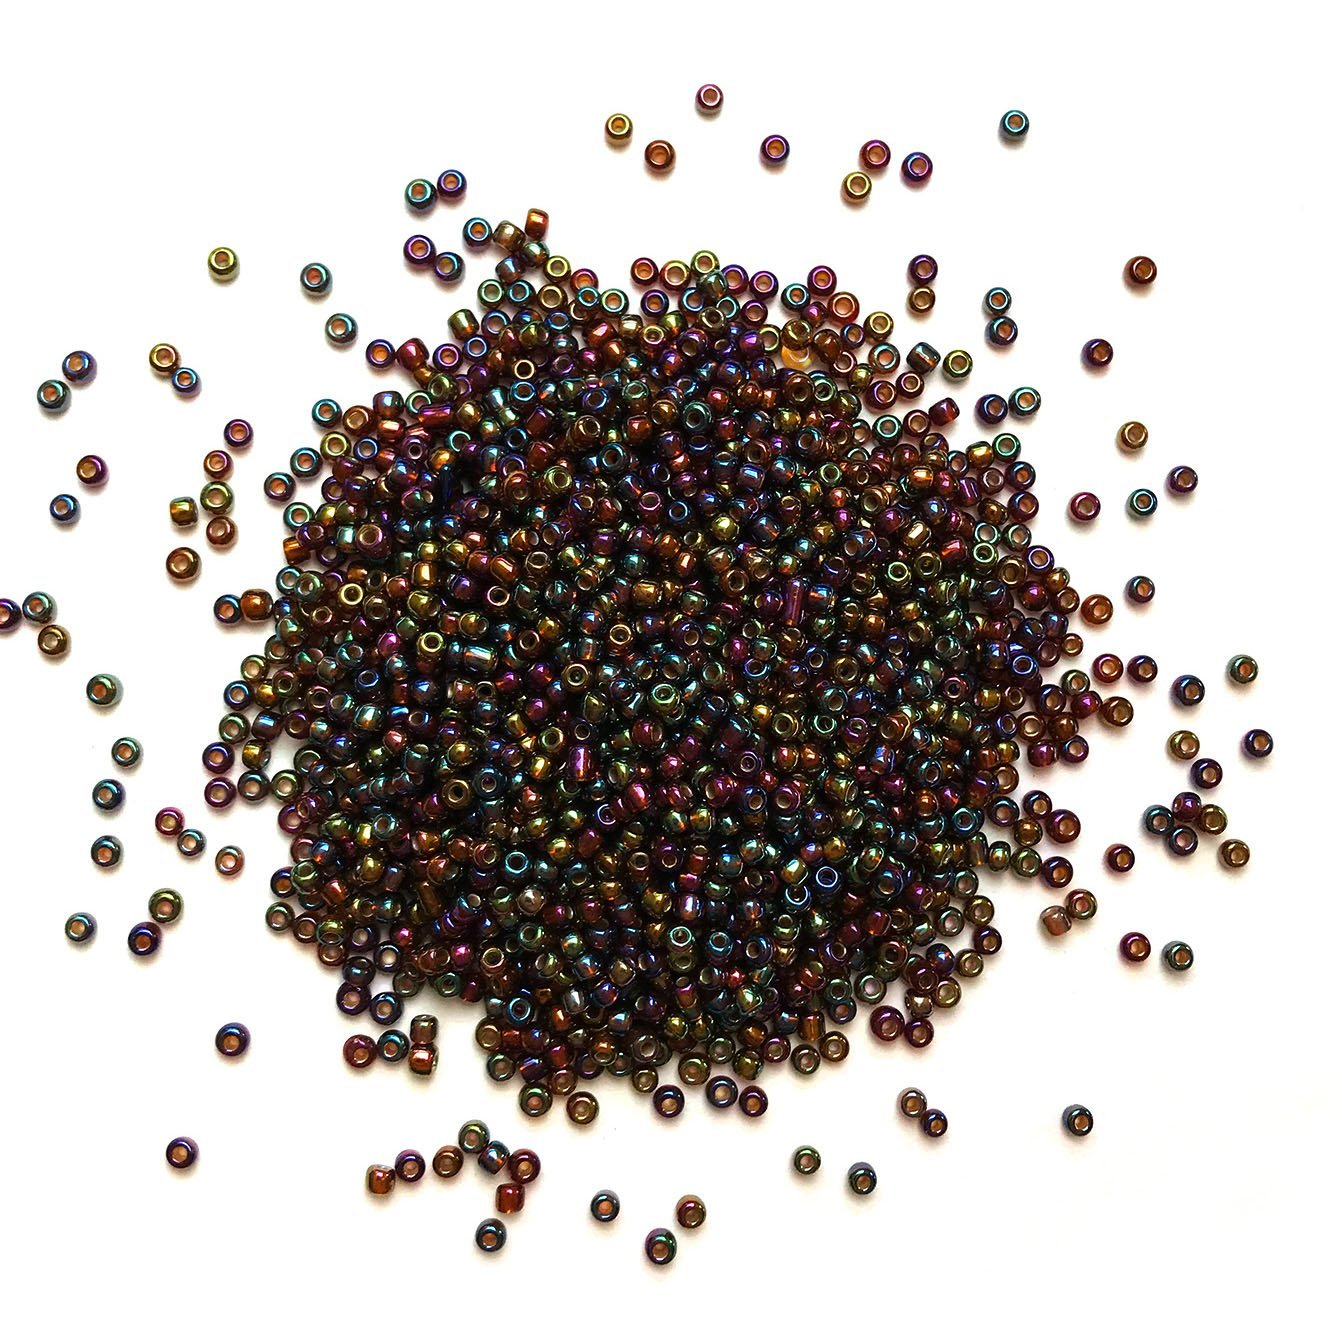 Dark Green Iridescent Seed Beads - 11/0